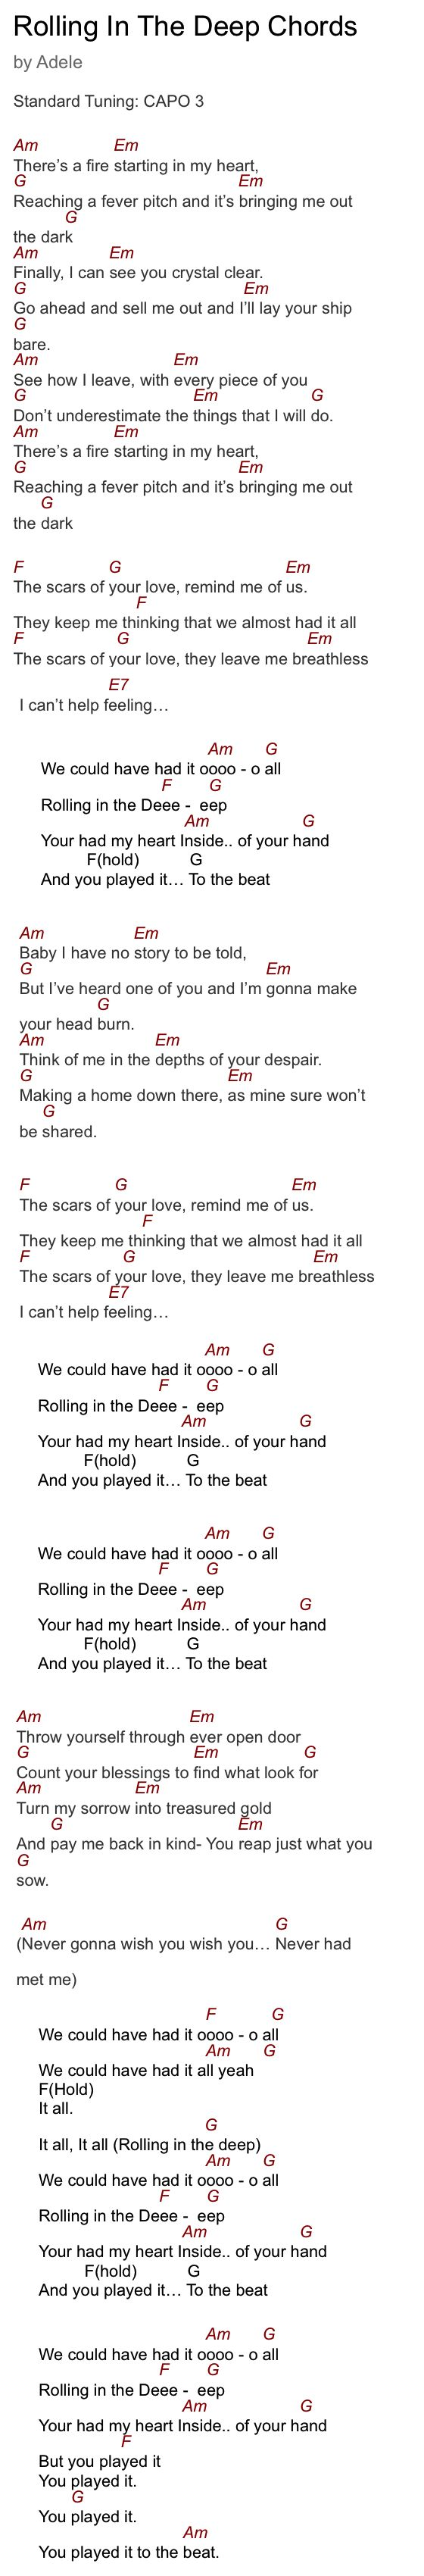 Adele's- Rolling in the Deep Guitar Chords CAPO 3